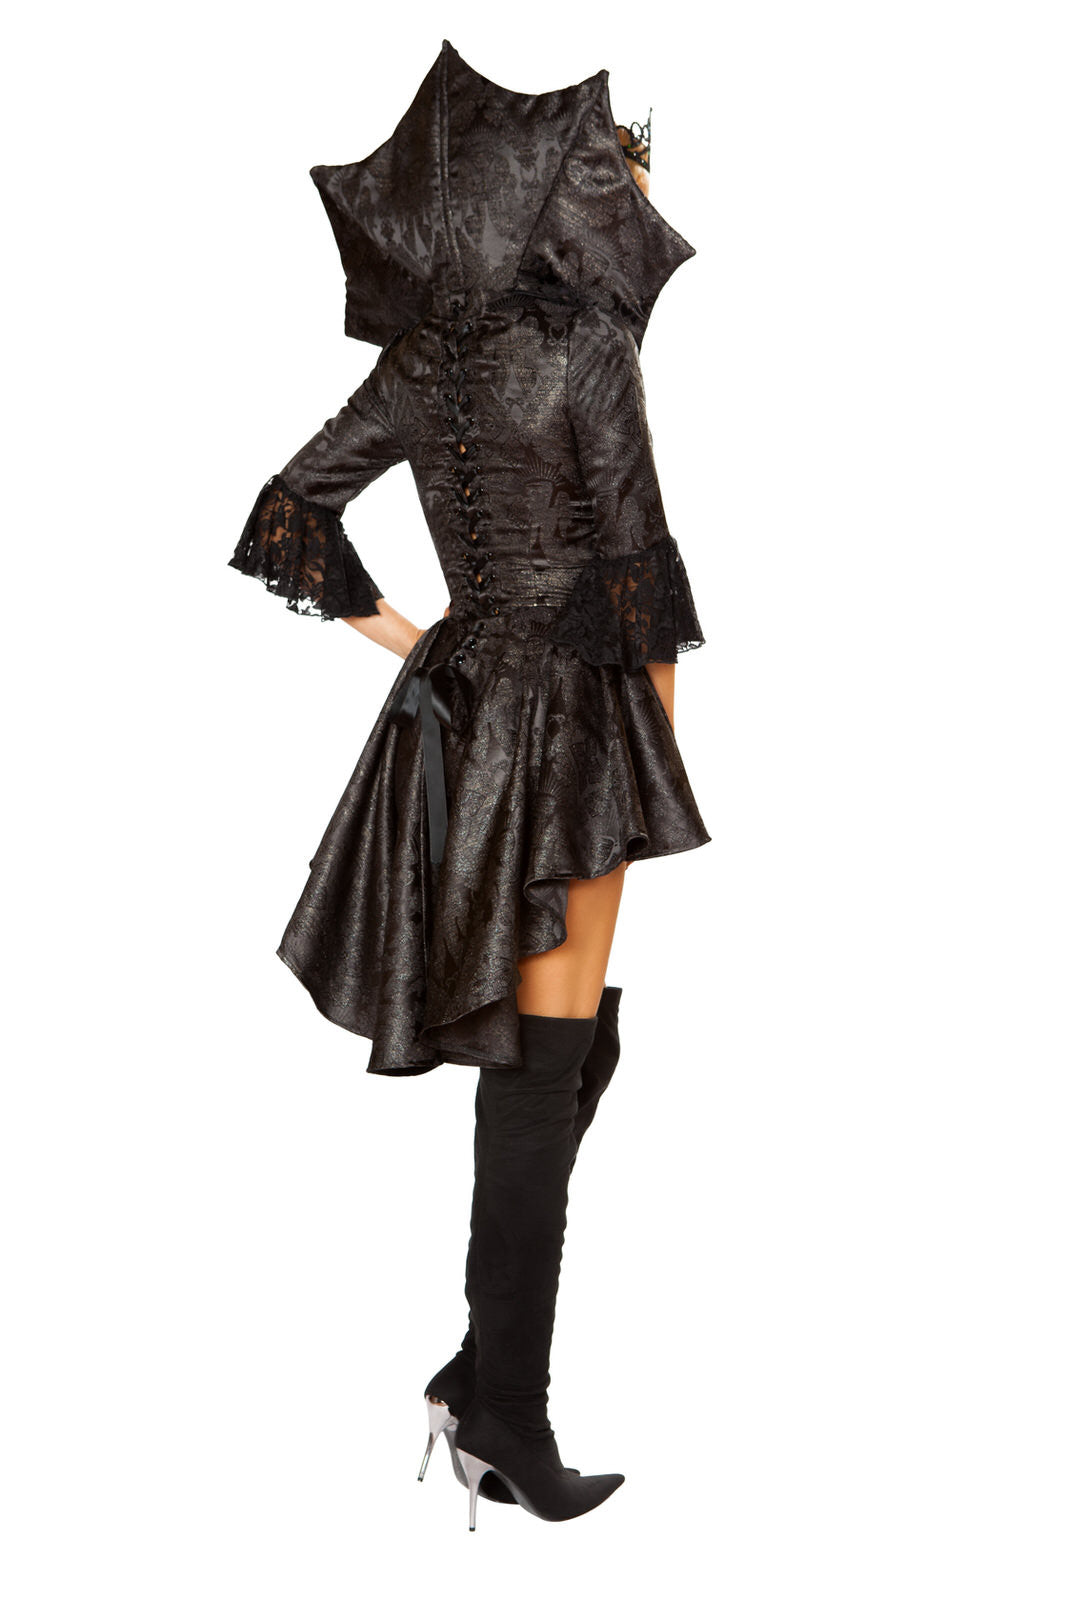 4785 - 4pc Queen of Darkness ${description} | Roma Costume and Roma Confidential wholesale manufacturer of Women Apparel bulk world wide wholesale and world wide drop ship services for Adult Halloween Costumes, Sexy and Elegant Lingerie, Rave Clothing, Club wear, and Christmas Costumes. Costumes, Roma Costume, Inc., Roma Costume, Roma Confidential, Wholesale clothing, drop ship, drop ship service, Wholesale Lingerie, Wholesale Adult Halloween Costumes, Rave Clothing, EDM Clothing, Festival Wear, Christmas Costumes, Clubwear, Club wear.